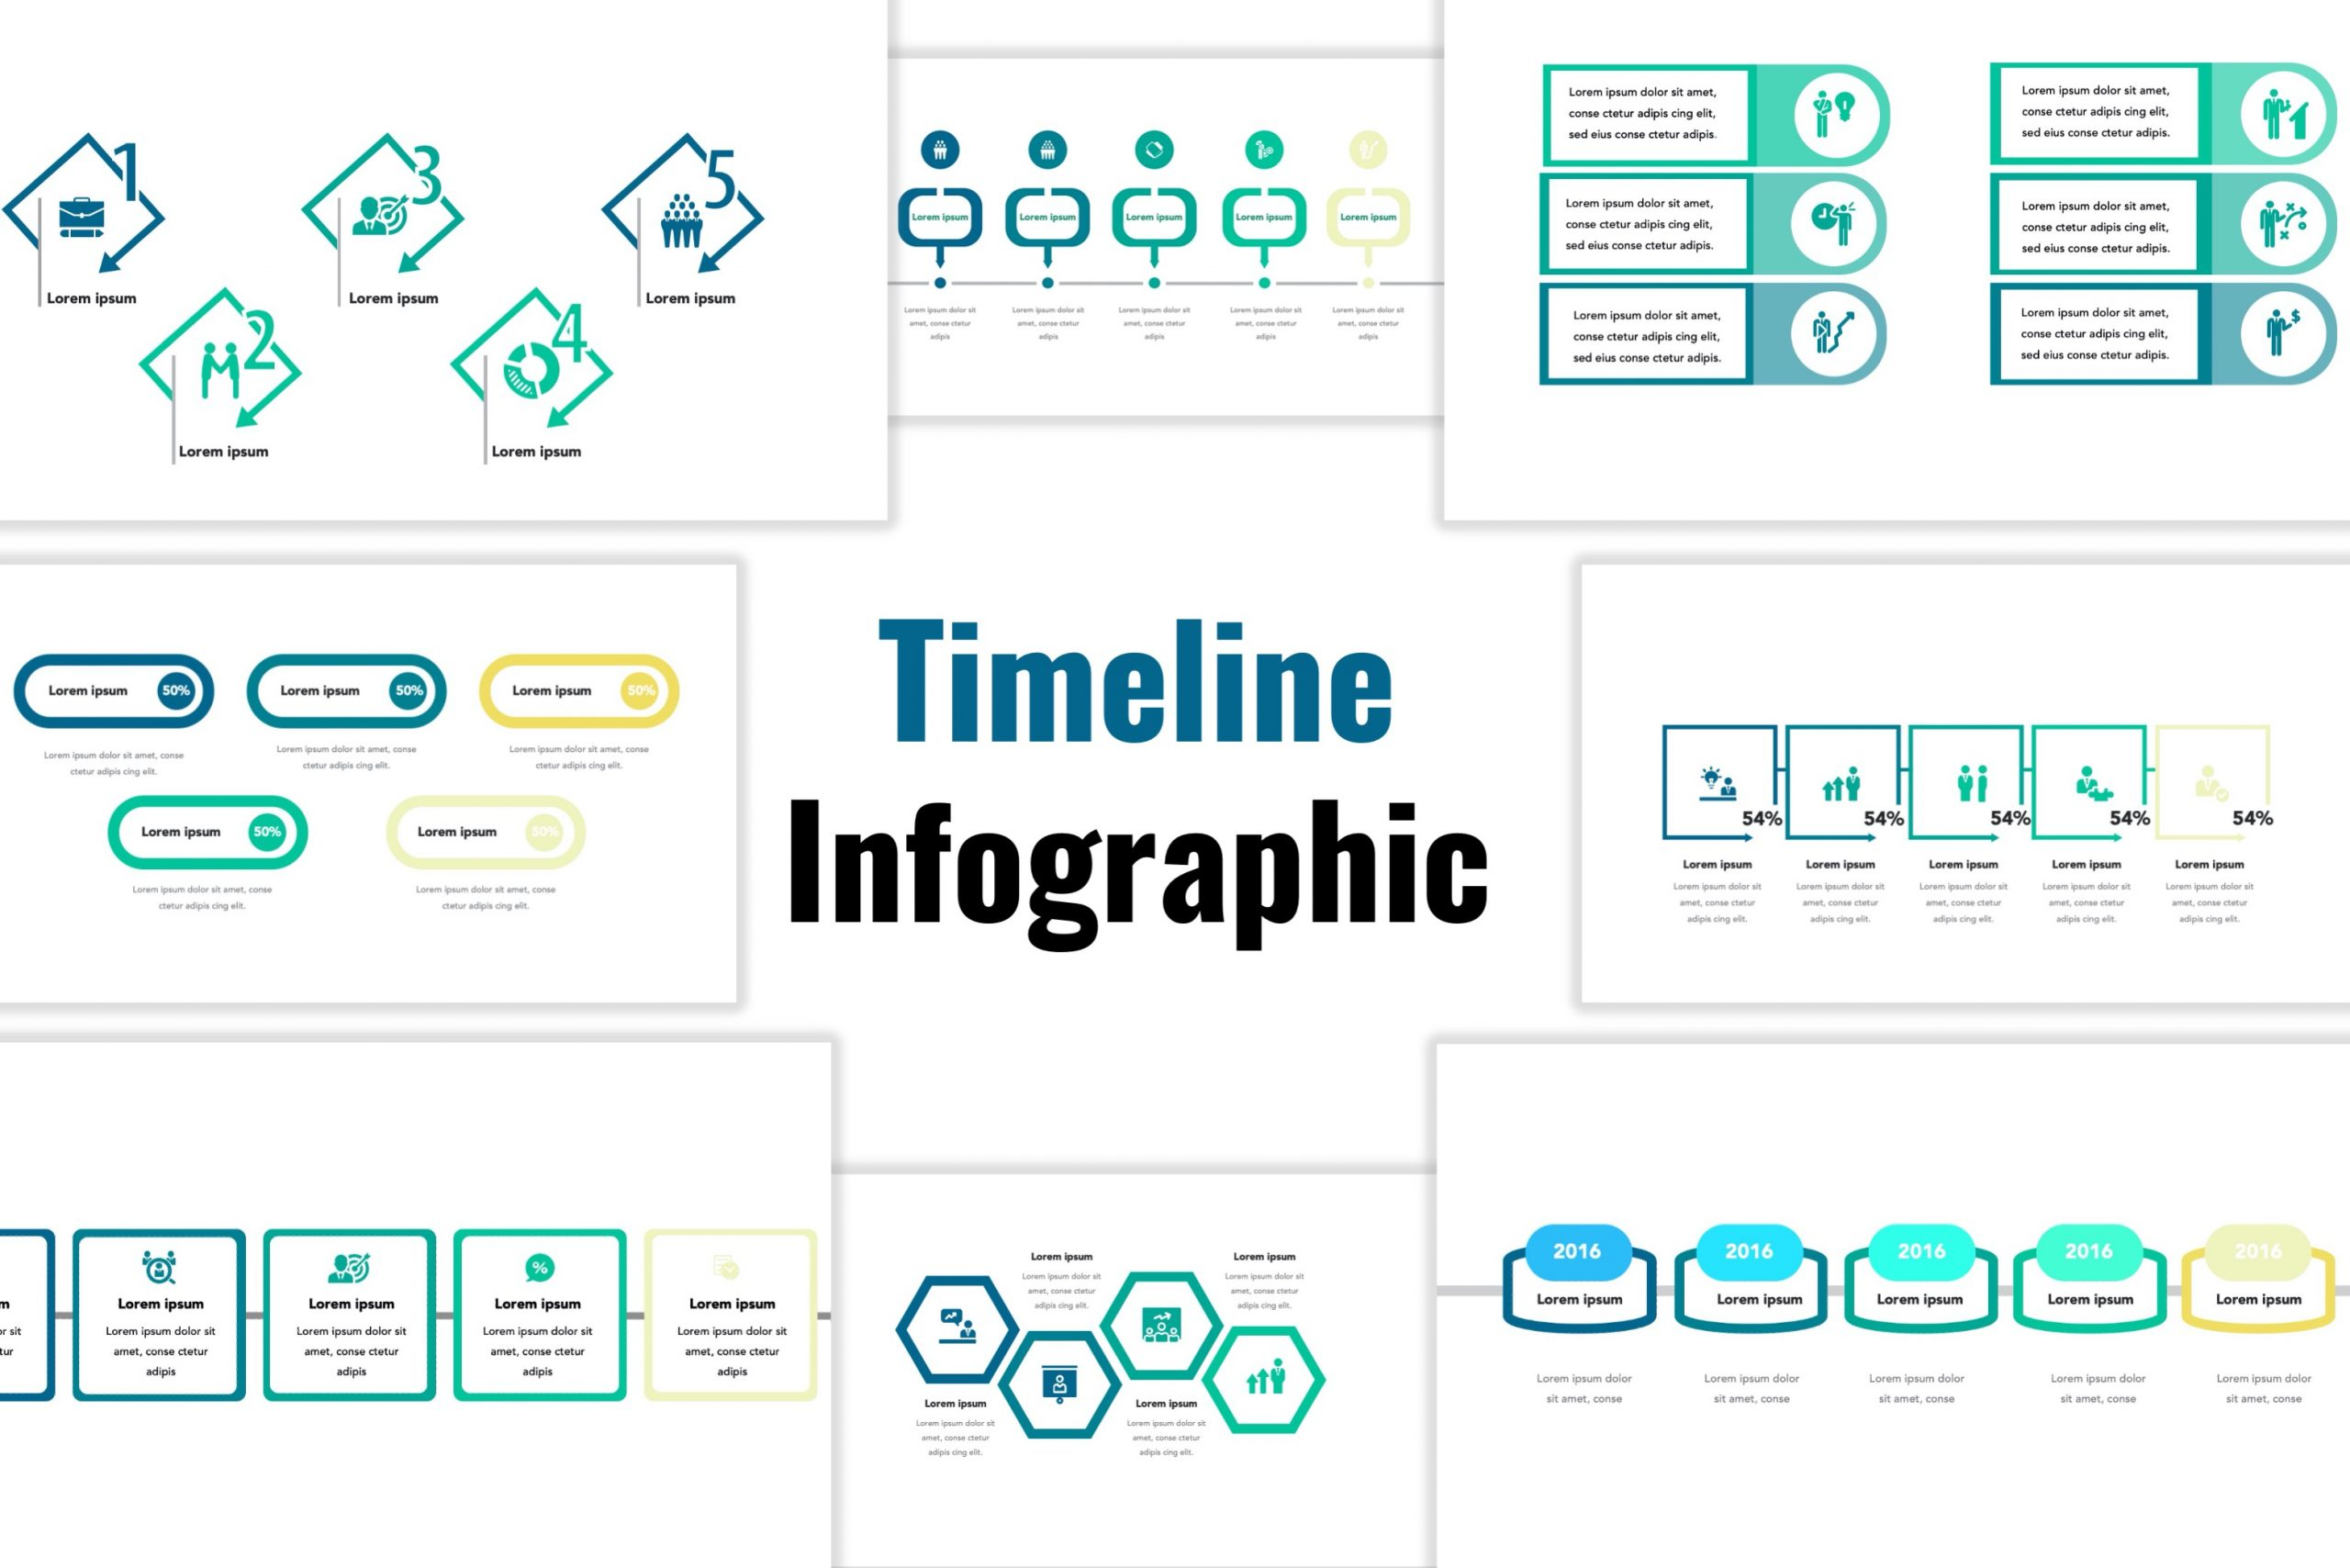 Free infographic template of Timeline